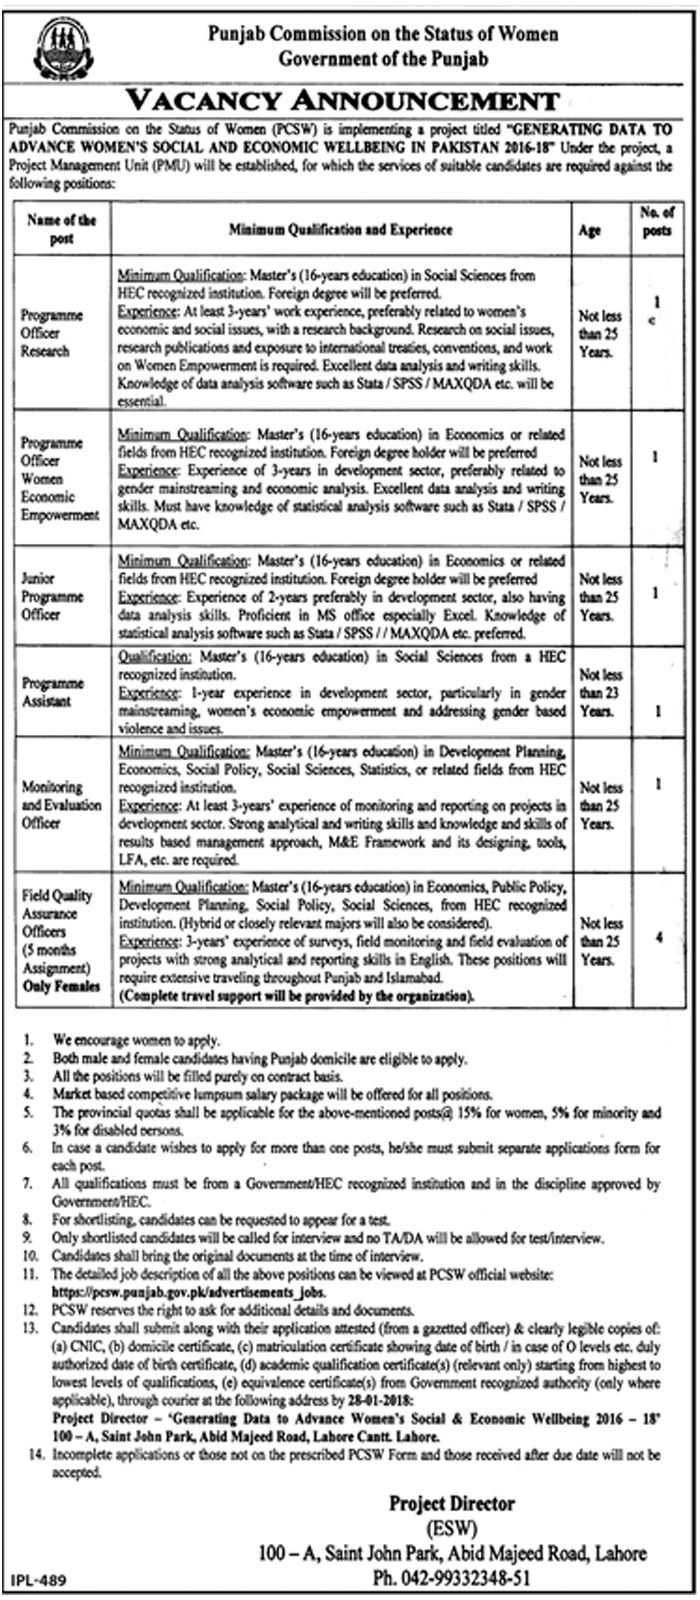 New Vacancies Announcement in Punjab Commission On The Status Of Women Advertisement 13 jan 2018